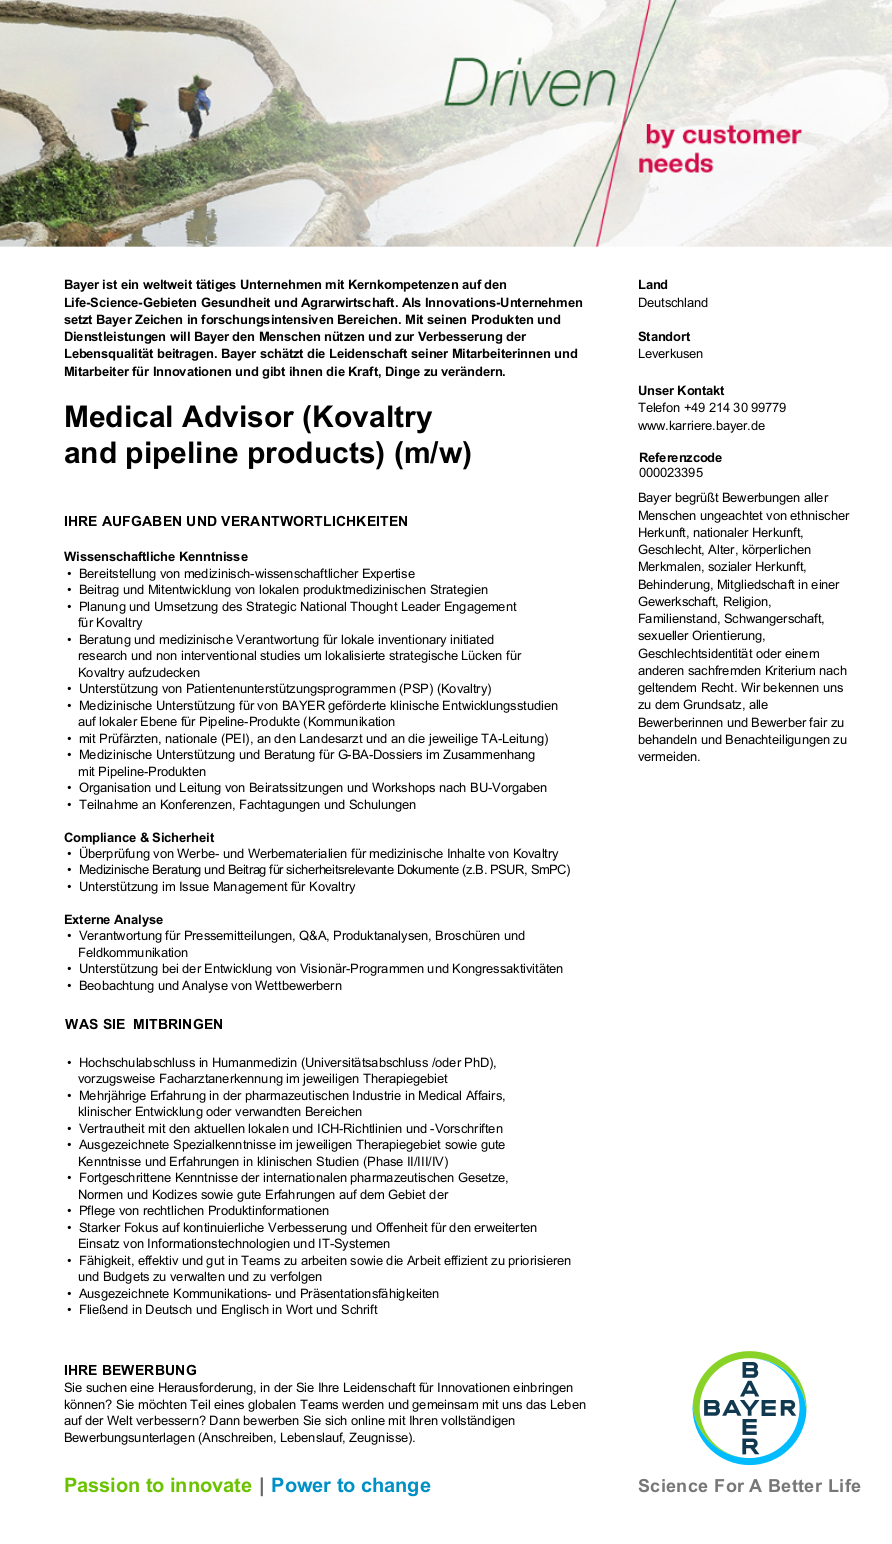 medical advisor kovaltry and pipeline products m w jobs stellenangebote in leverkusen nordrhein westfalen pharma jobs - Bayer Bewerbung